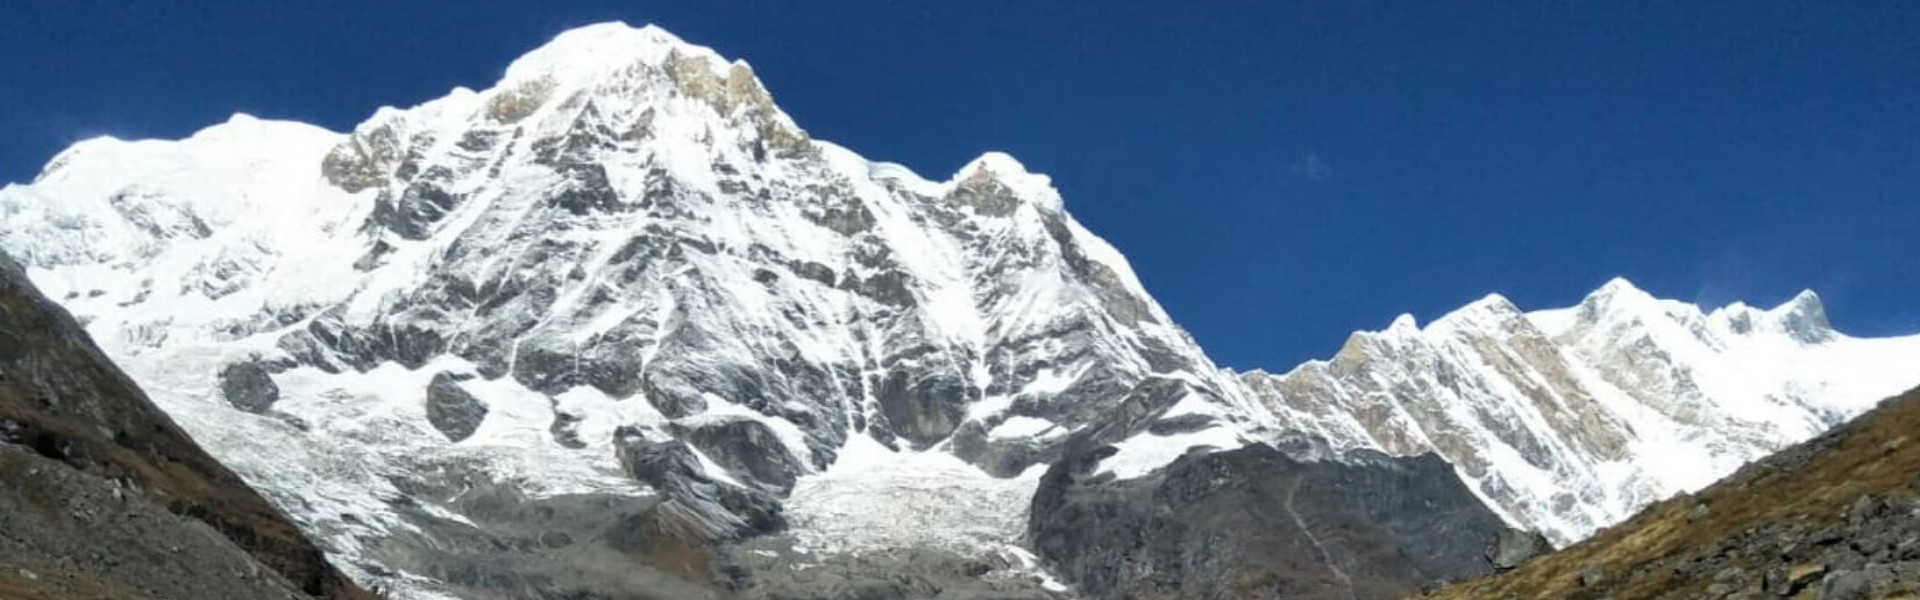 Annapurna Base Camp Trek Difficulty - How hard is ABC trek